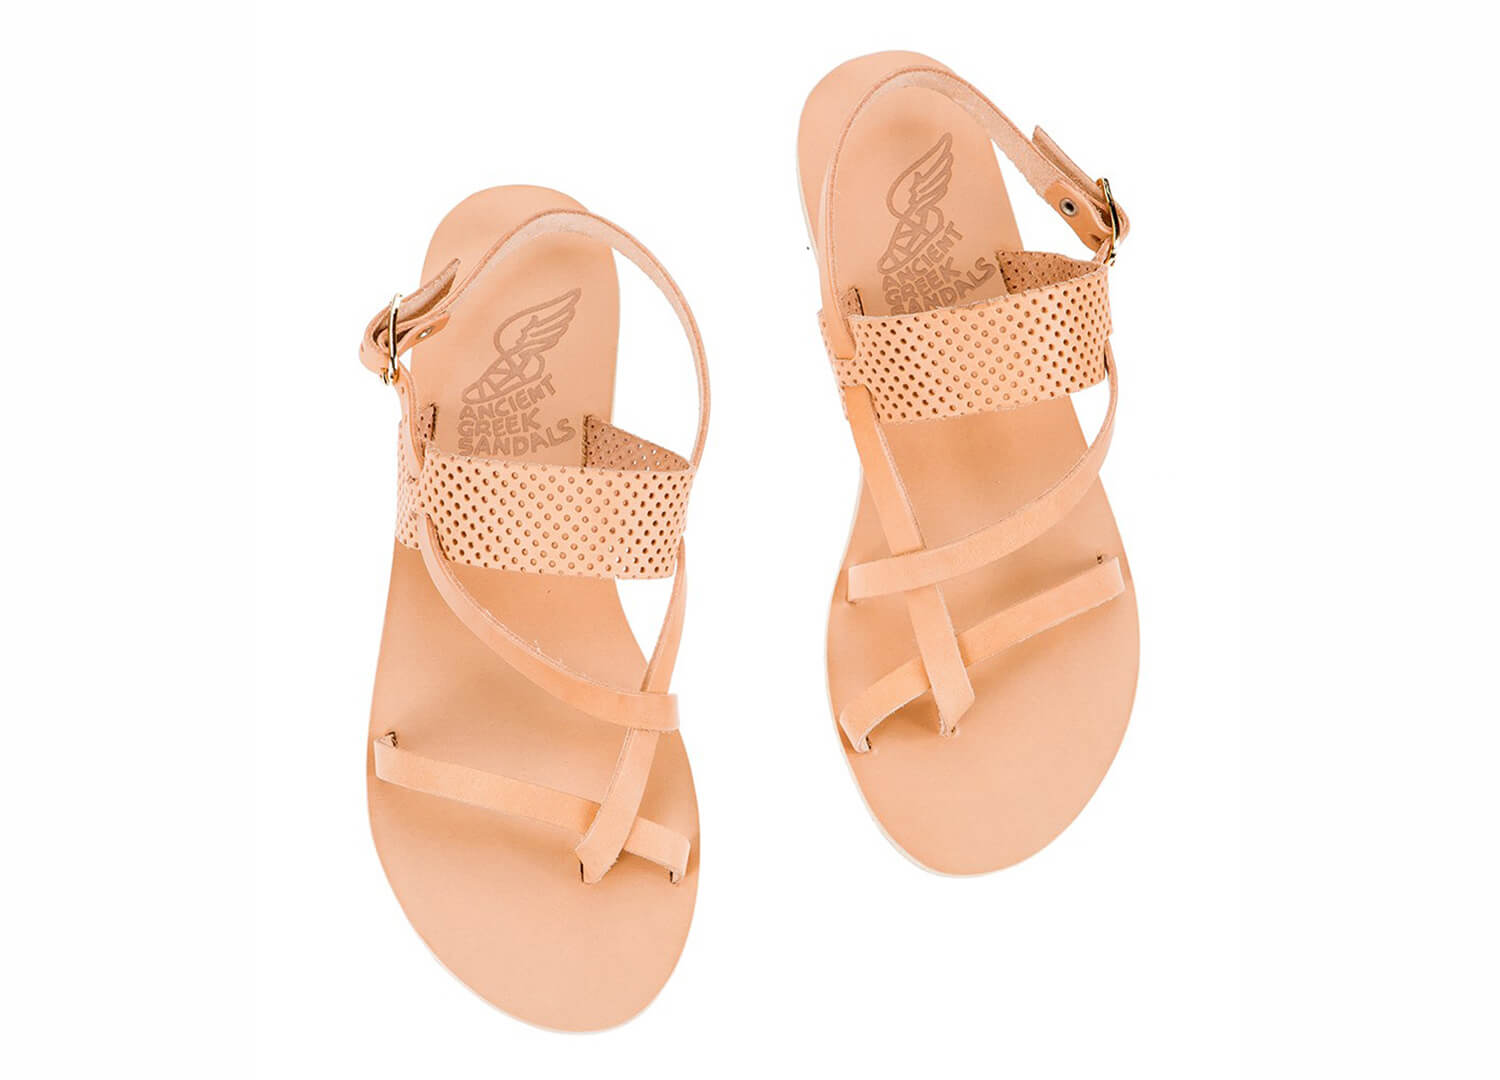 est living ancient greek sandals alethea natural perforated natural leather straps 1